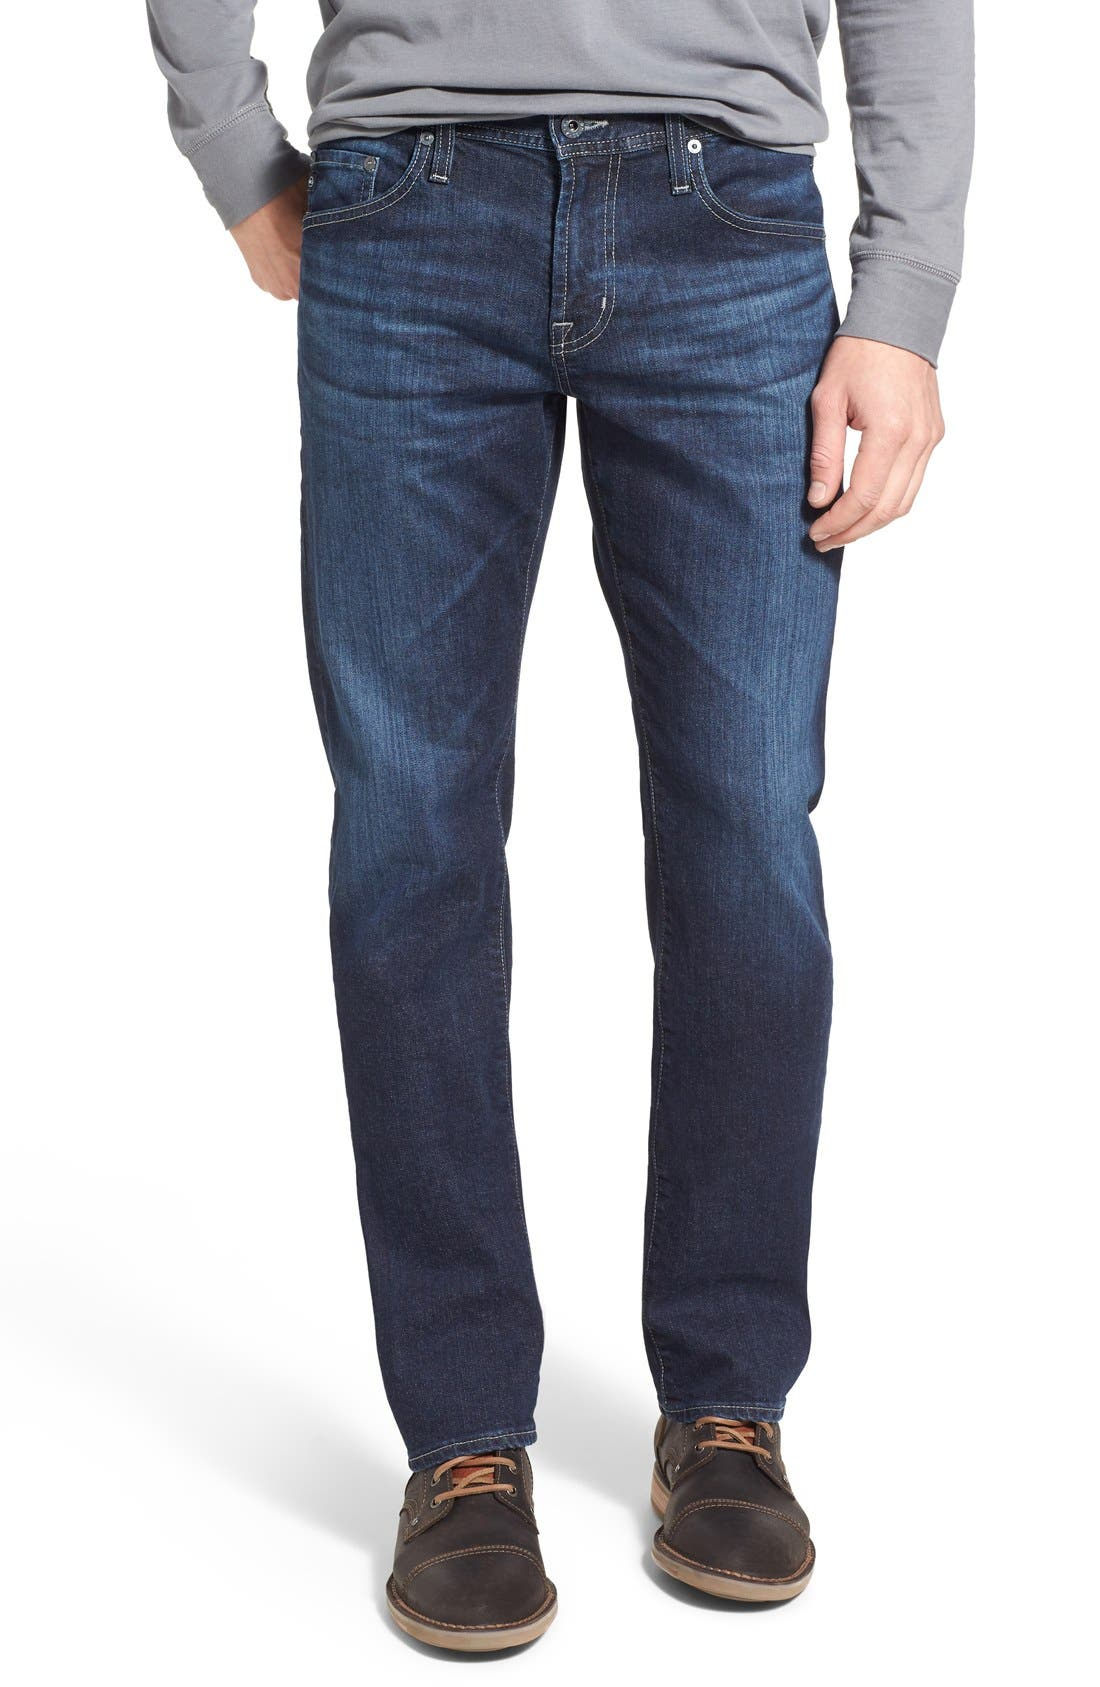 'Protégé' Straight Leg Jeans,                         Main,                         color, Kingswell